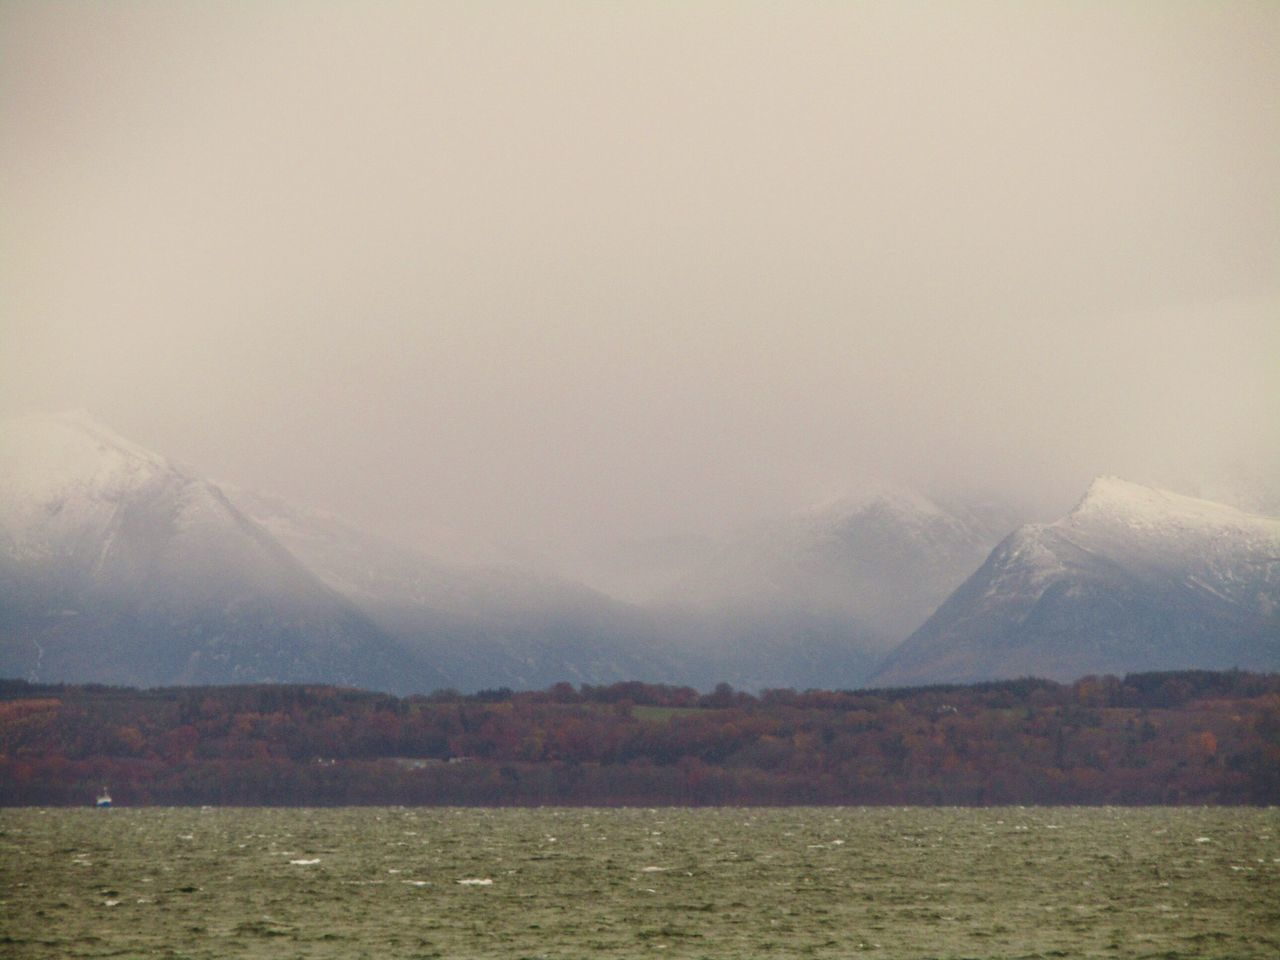 Nature Autumn Landscape Snow Caped Mountain Background No People Isle Of Arran  For Ground Isle Of Bute Chopy Seas Beauty In Nature Scotland Mountain Water